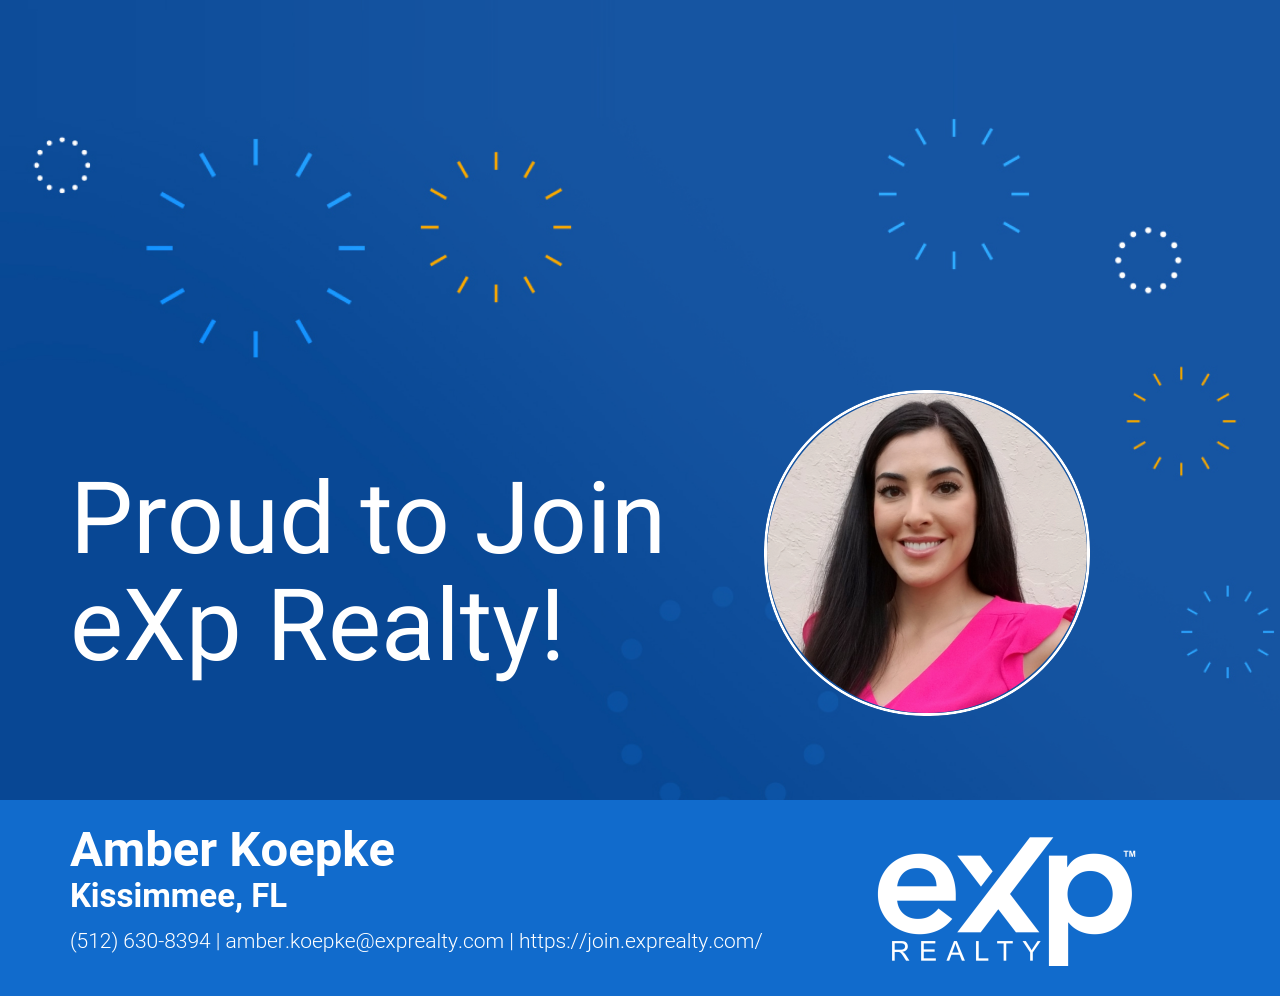 Amber Koepke Joined eXp Realty!